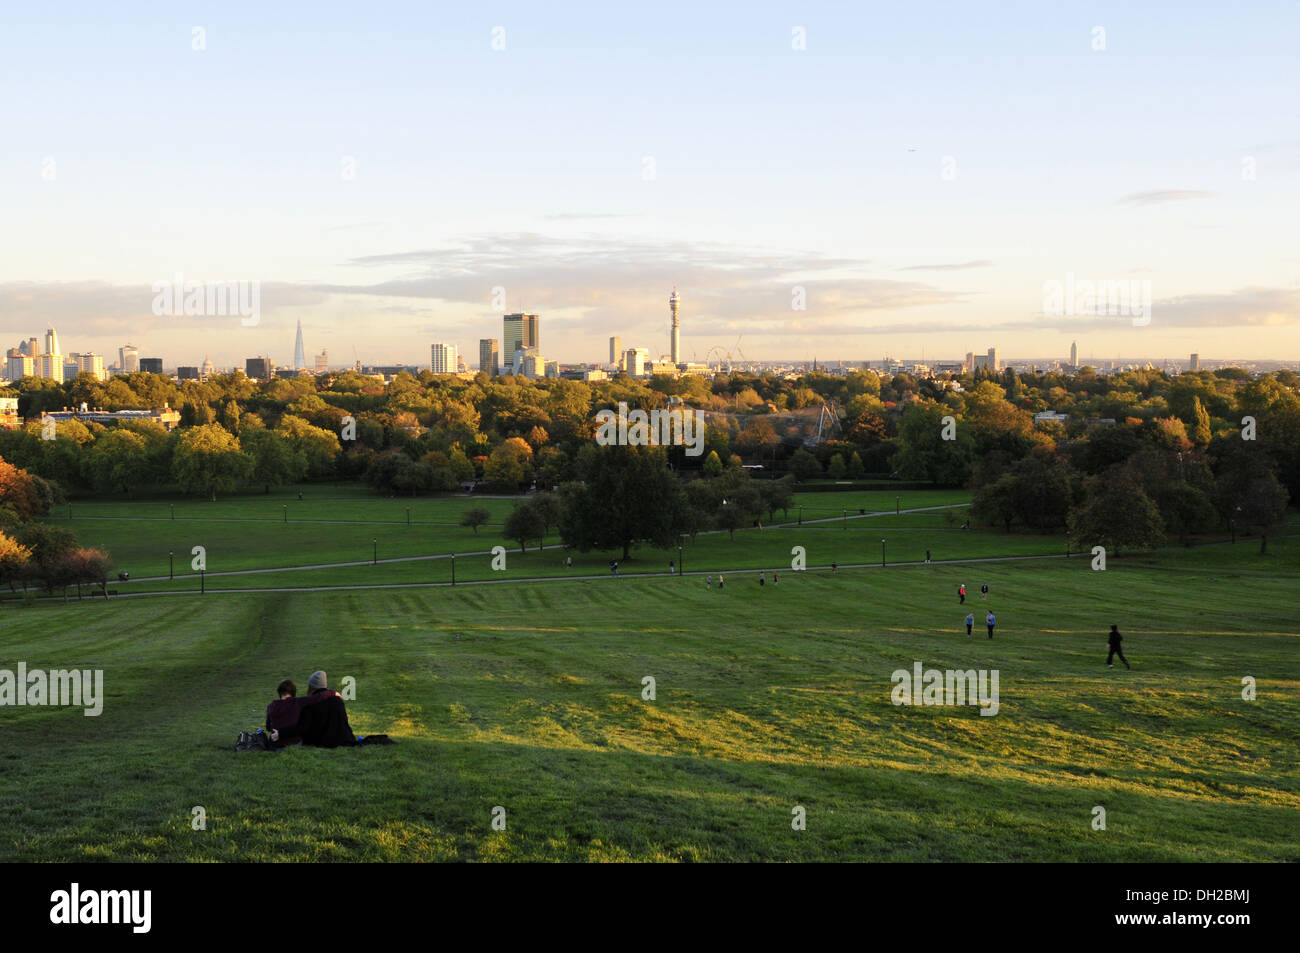 A view of central London from Primrose Hill, UK - Stock Image